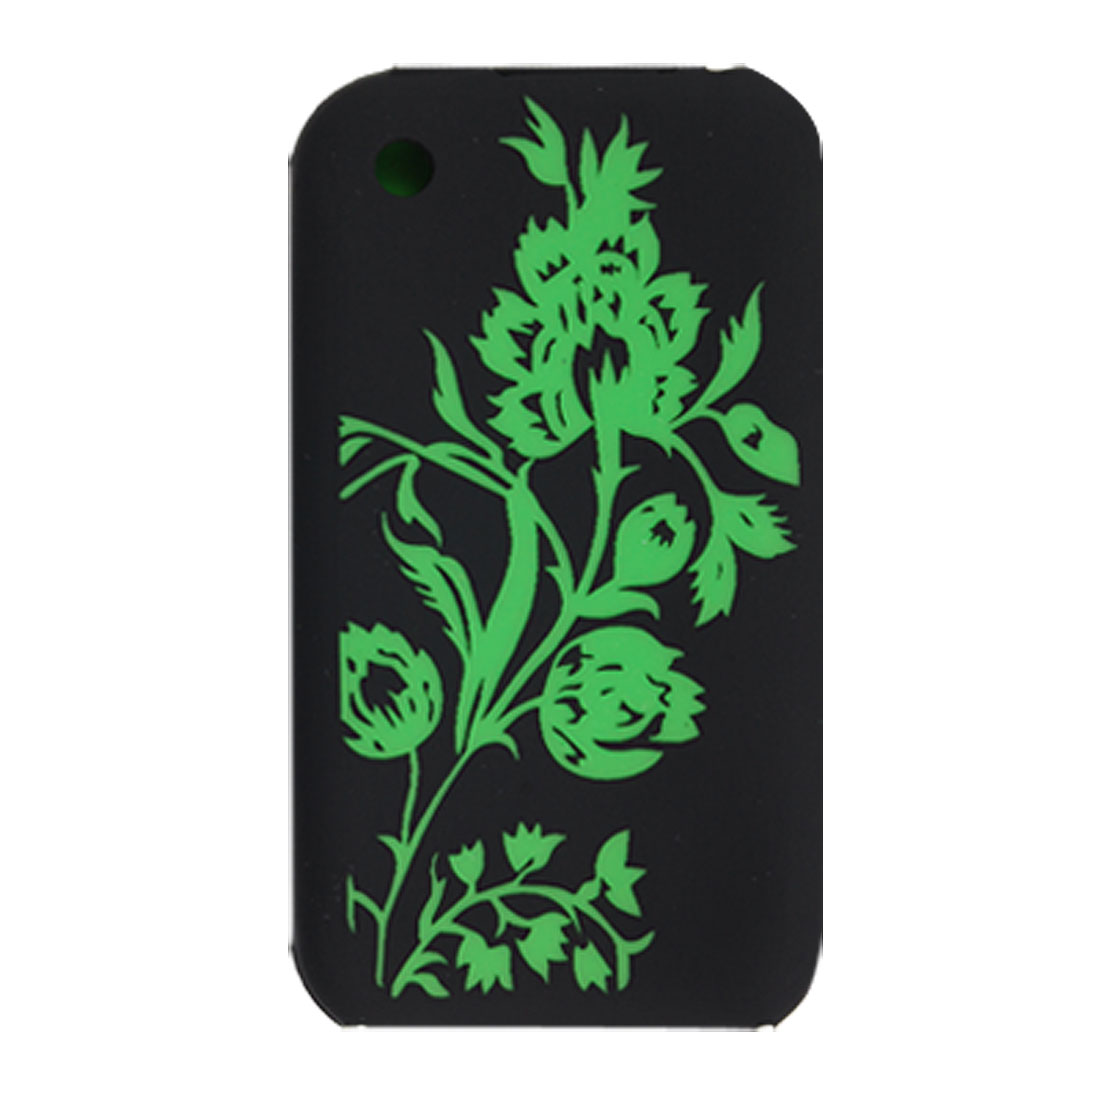 Green Flower Pattern Soft Silicone Case Cover Black for iPhone 3G